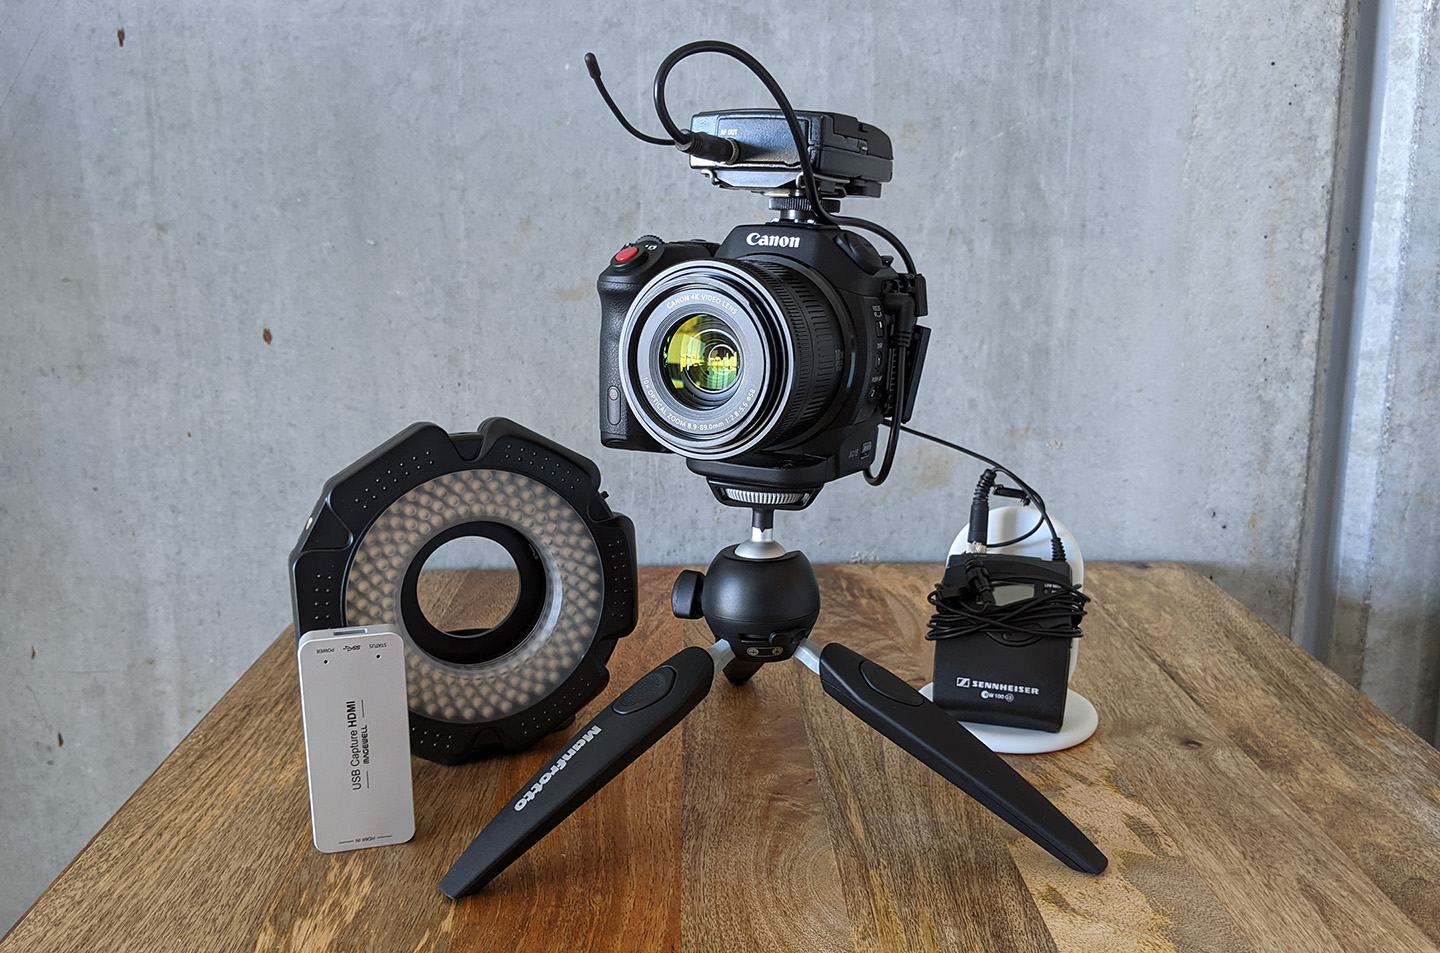 Camera sitting on a small tripod on a table alongside additional video equipment.